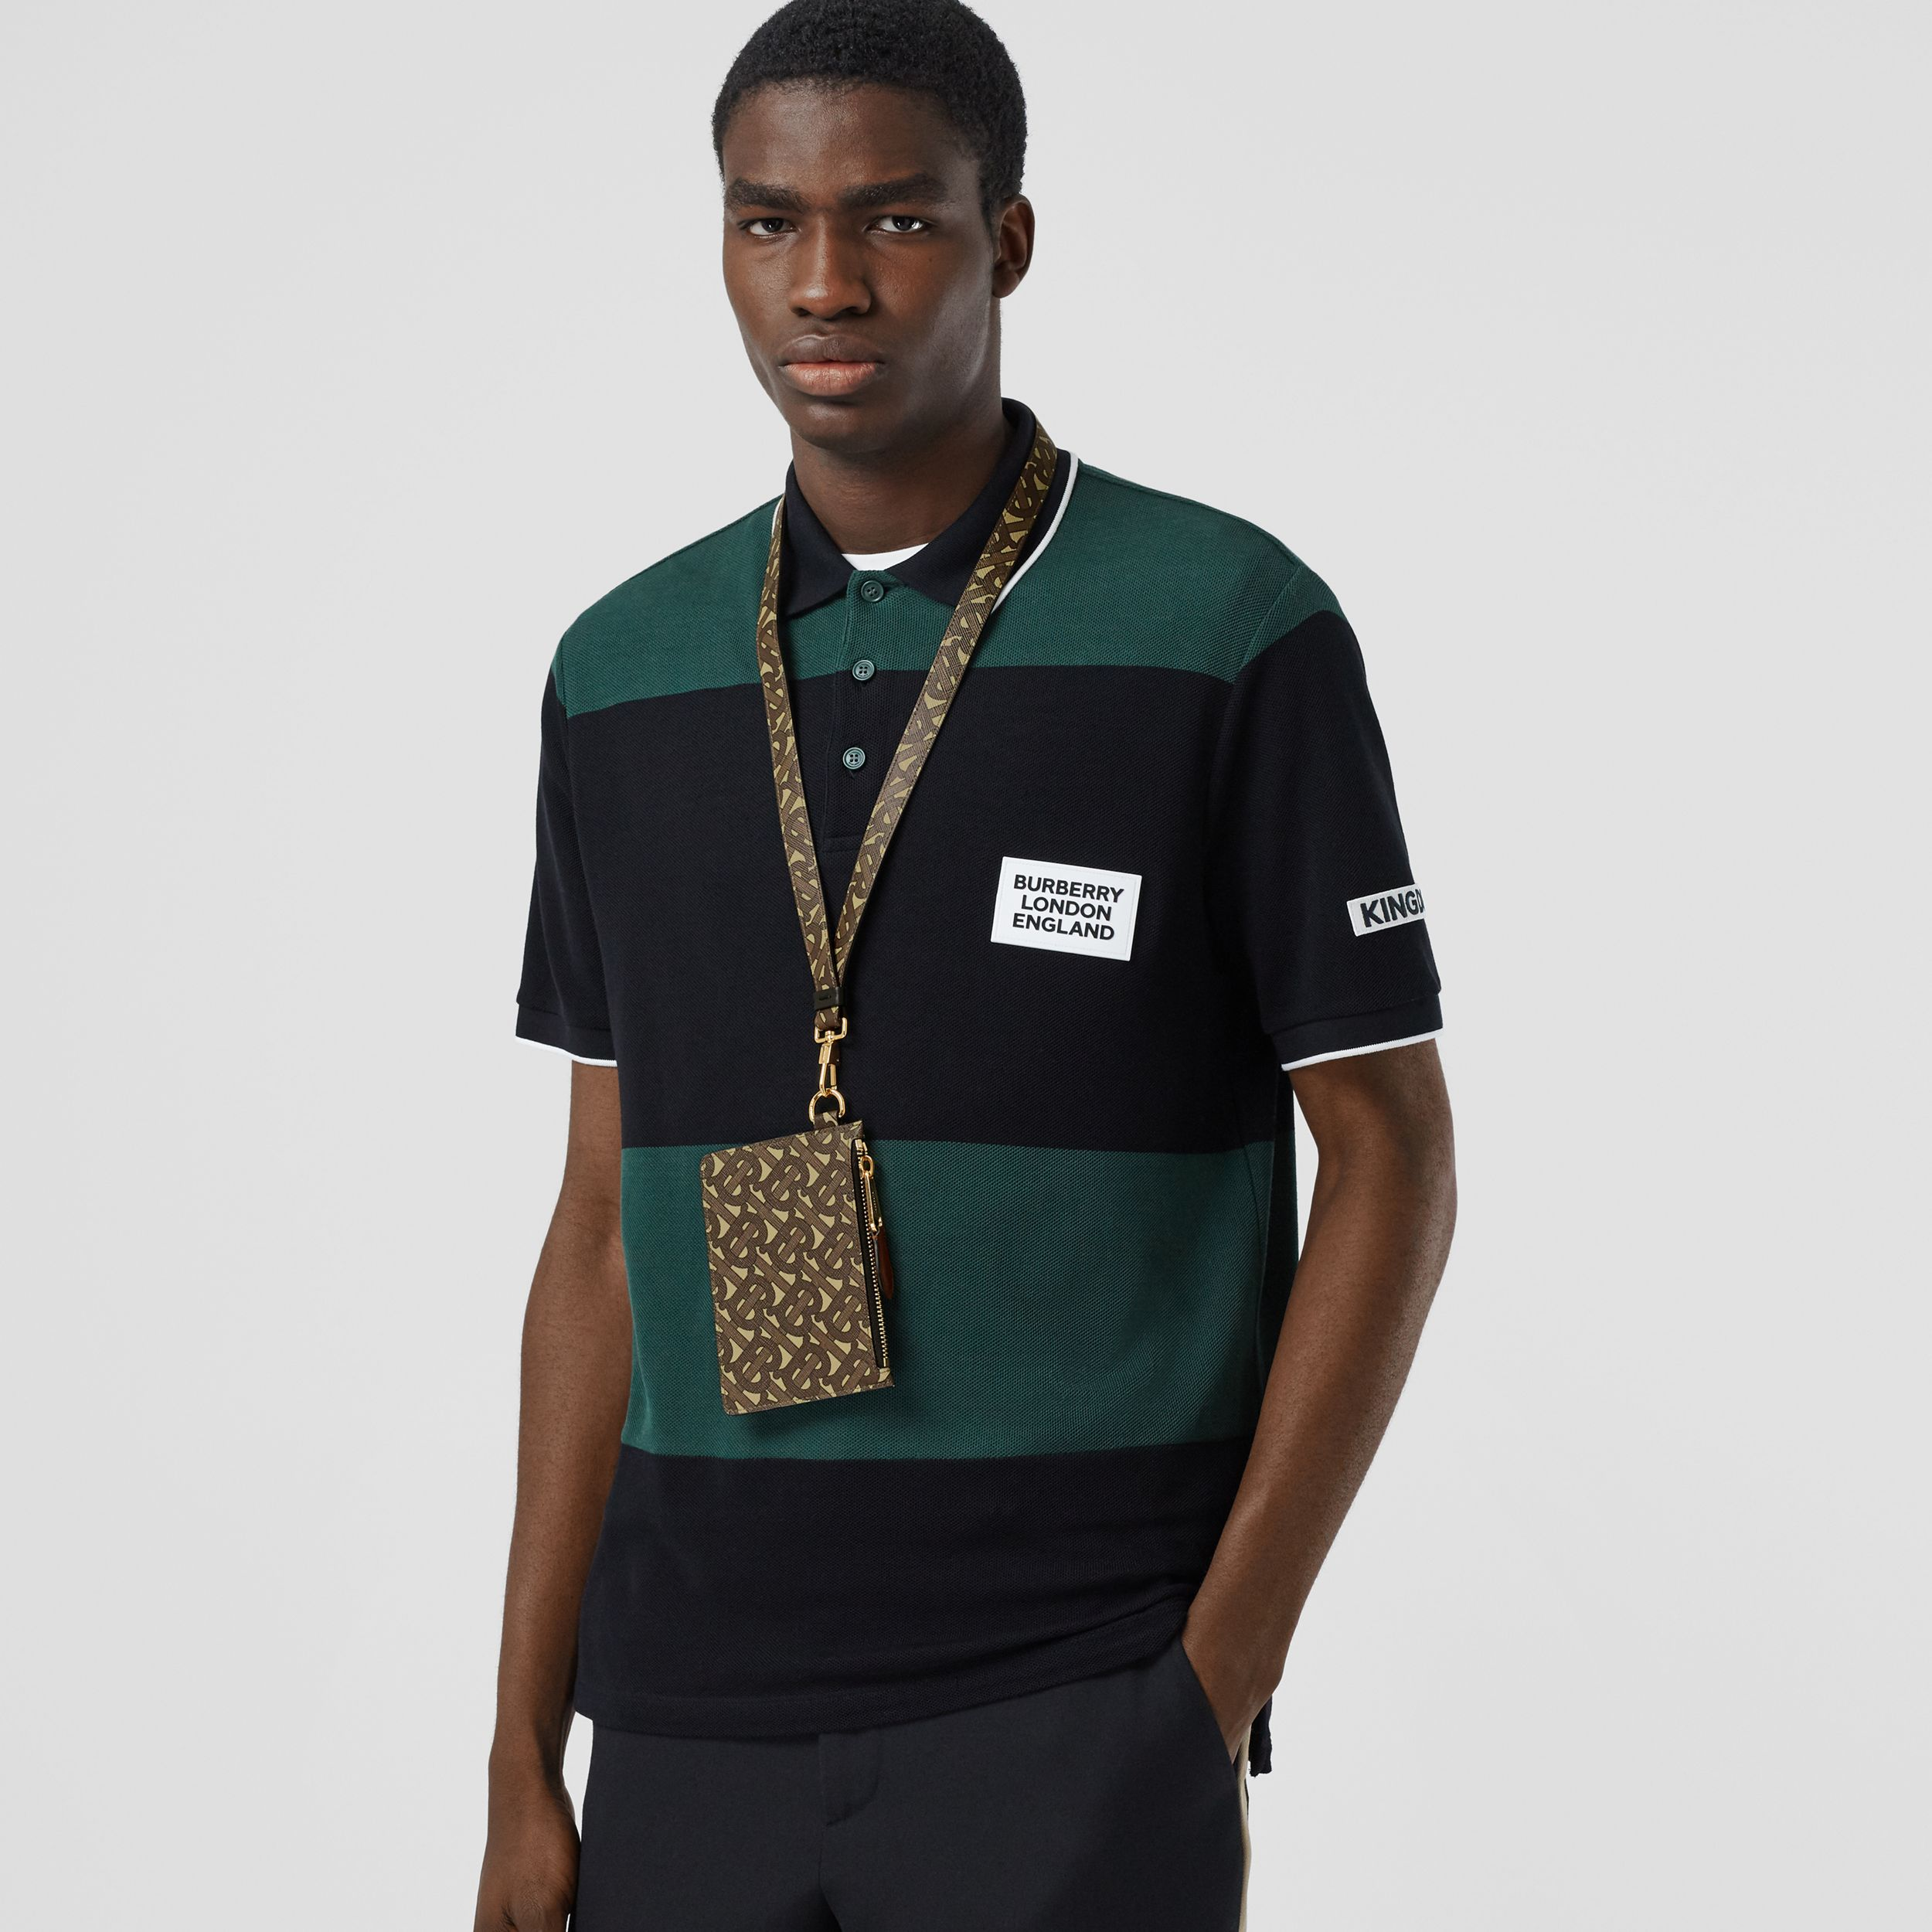 Monogram Print E-canvas and Leather Lanyard in Bridle Brown - Men | Burberry Australia - 3